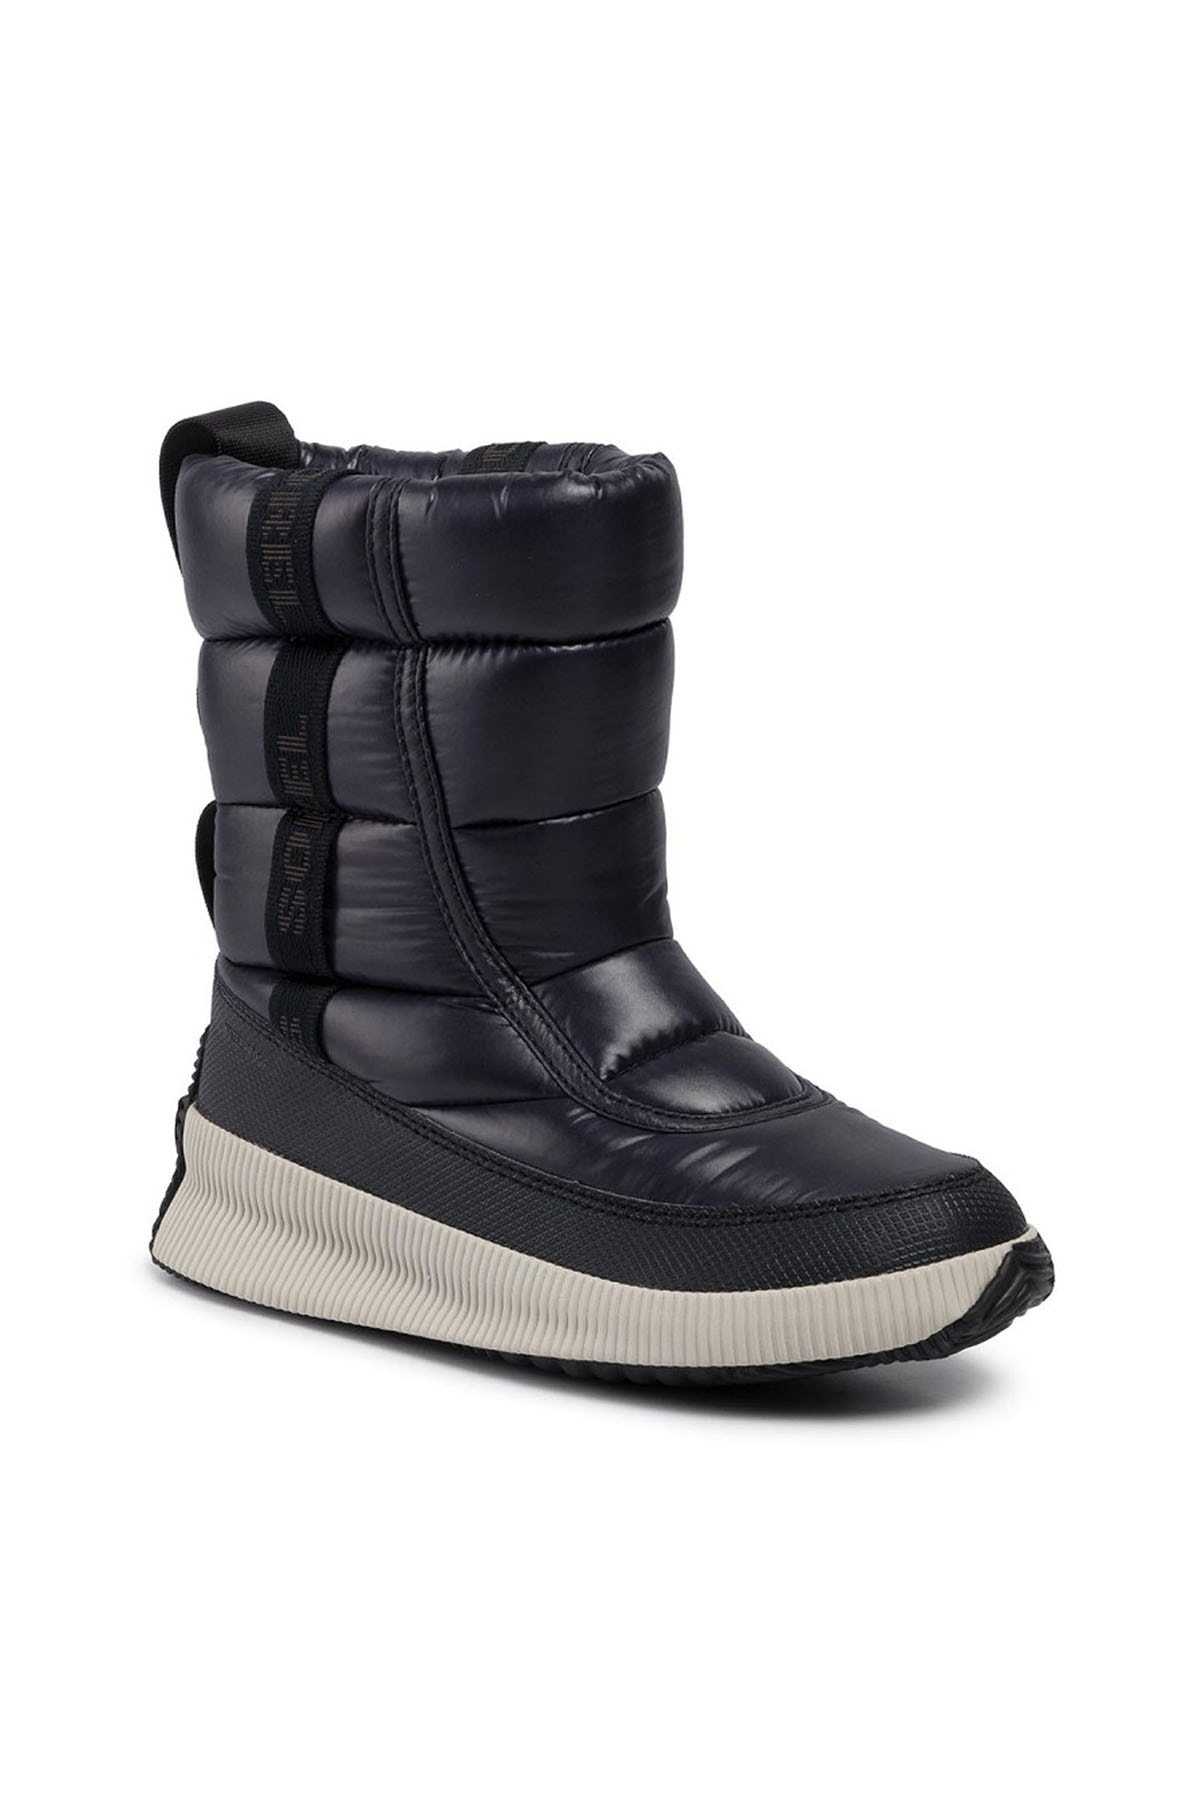 Sorel NL3394 OUT N ABOUT PUFFY MID KADIN BOT